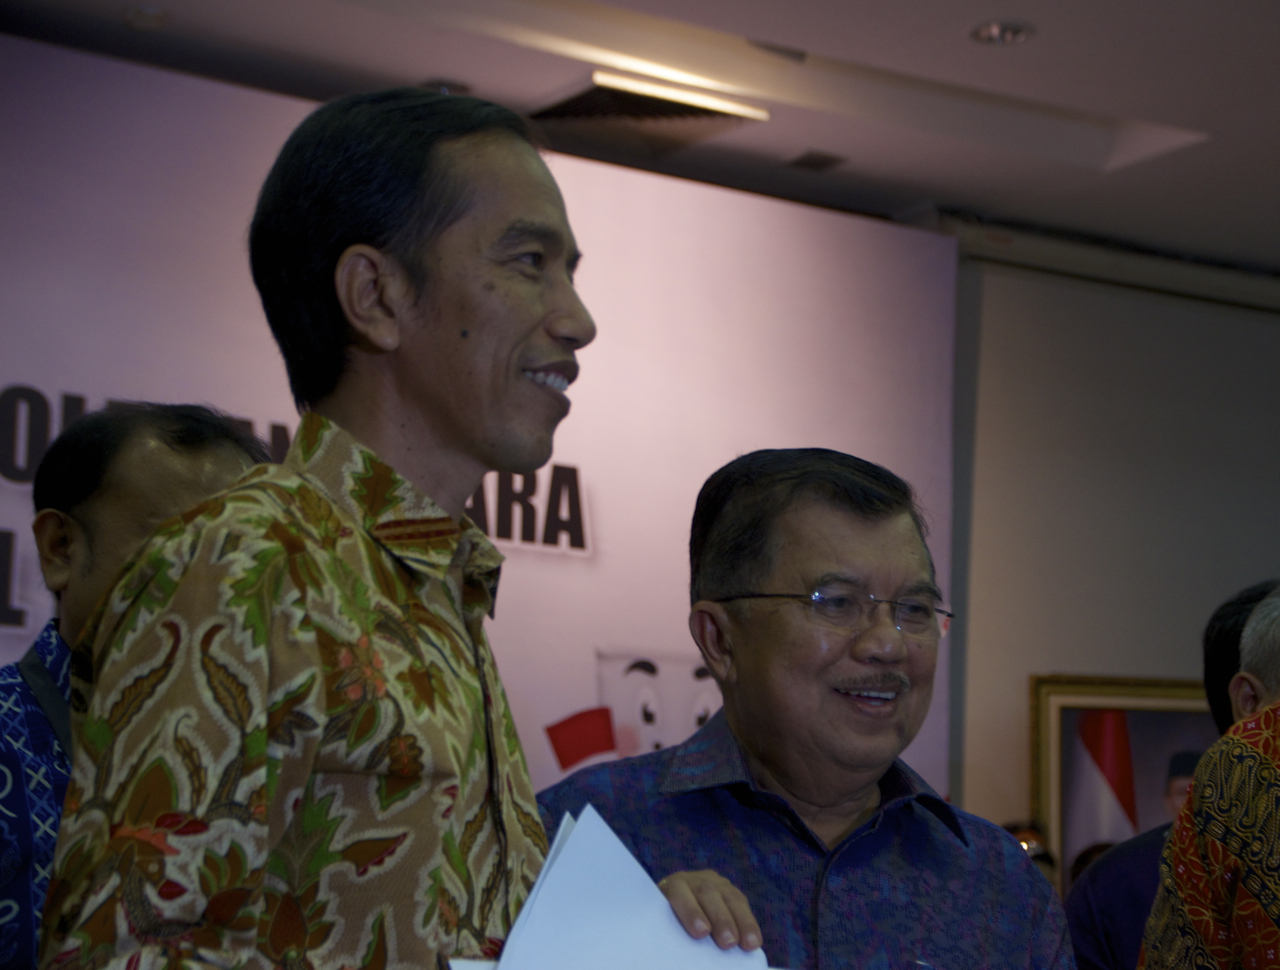 President Joko Widodo and Vice-President Jusuf Kalla, at Indonesia's Election Commission on July 22 (Photo: Simon Roughneen)